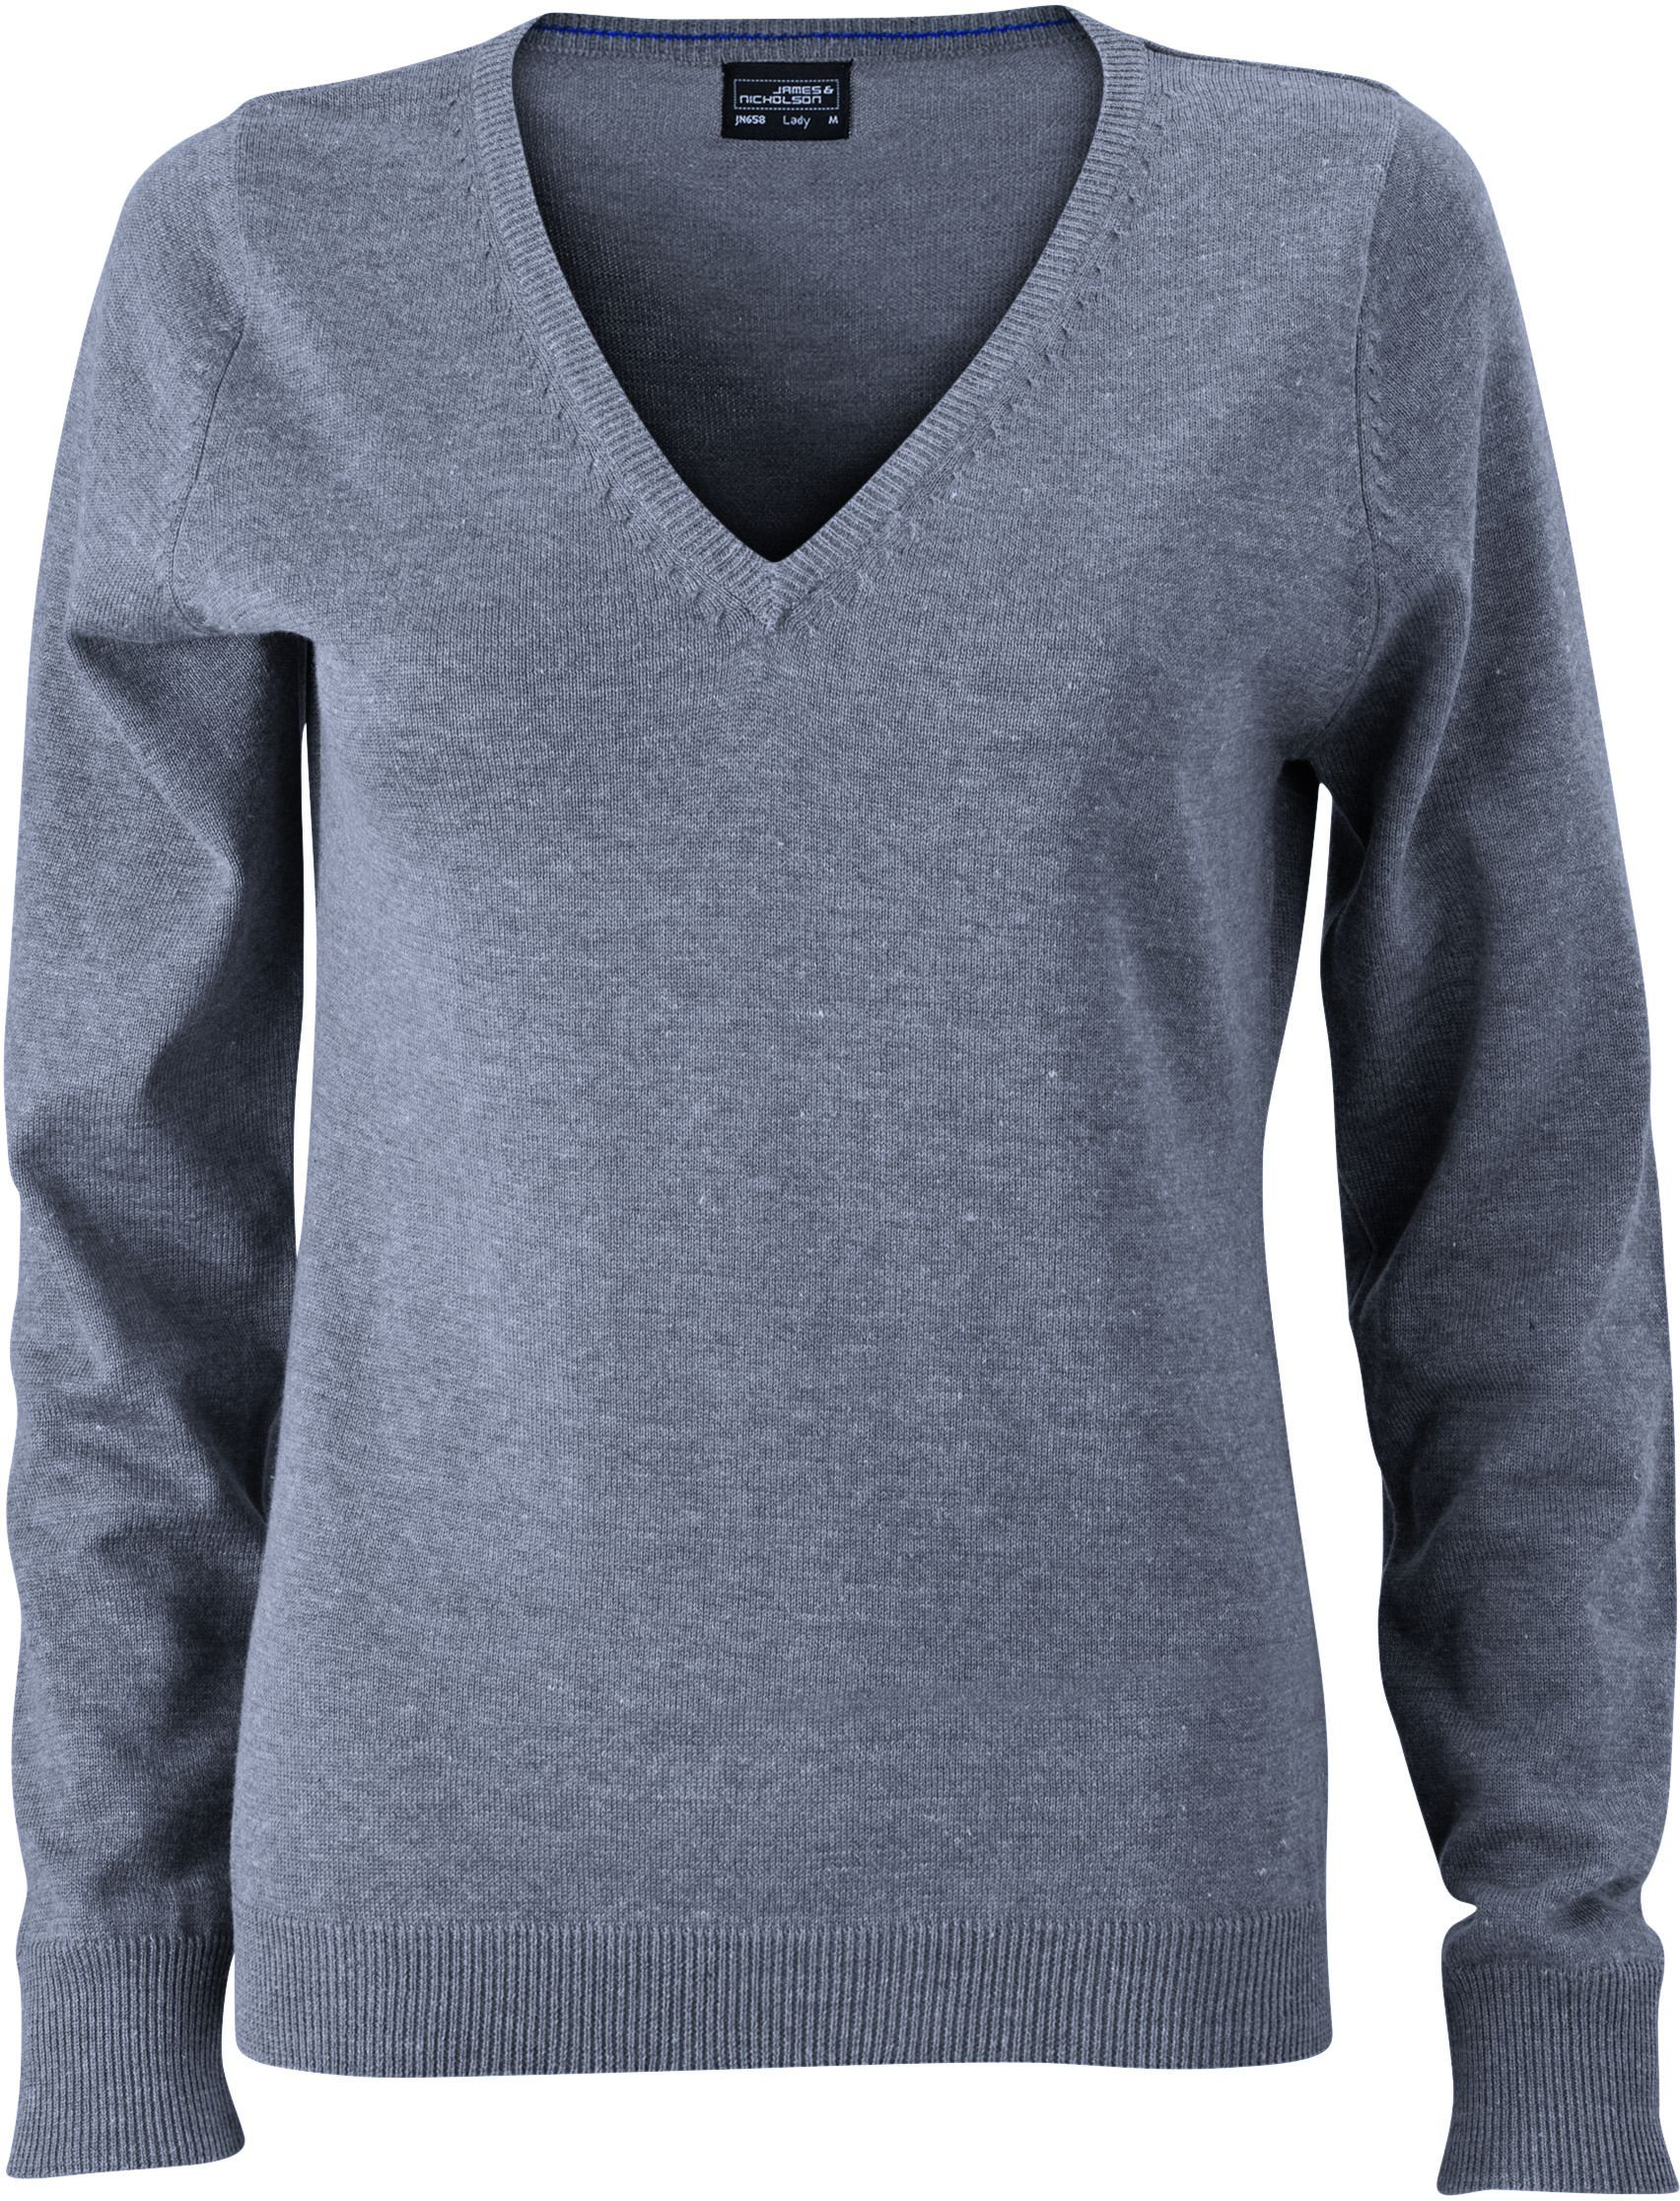 Ladies' V-Neck Pullover James & Nicholson - grey heather